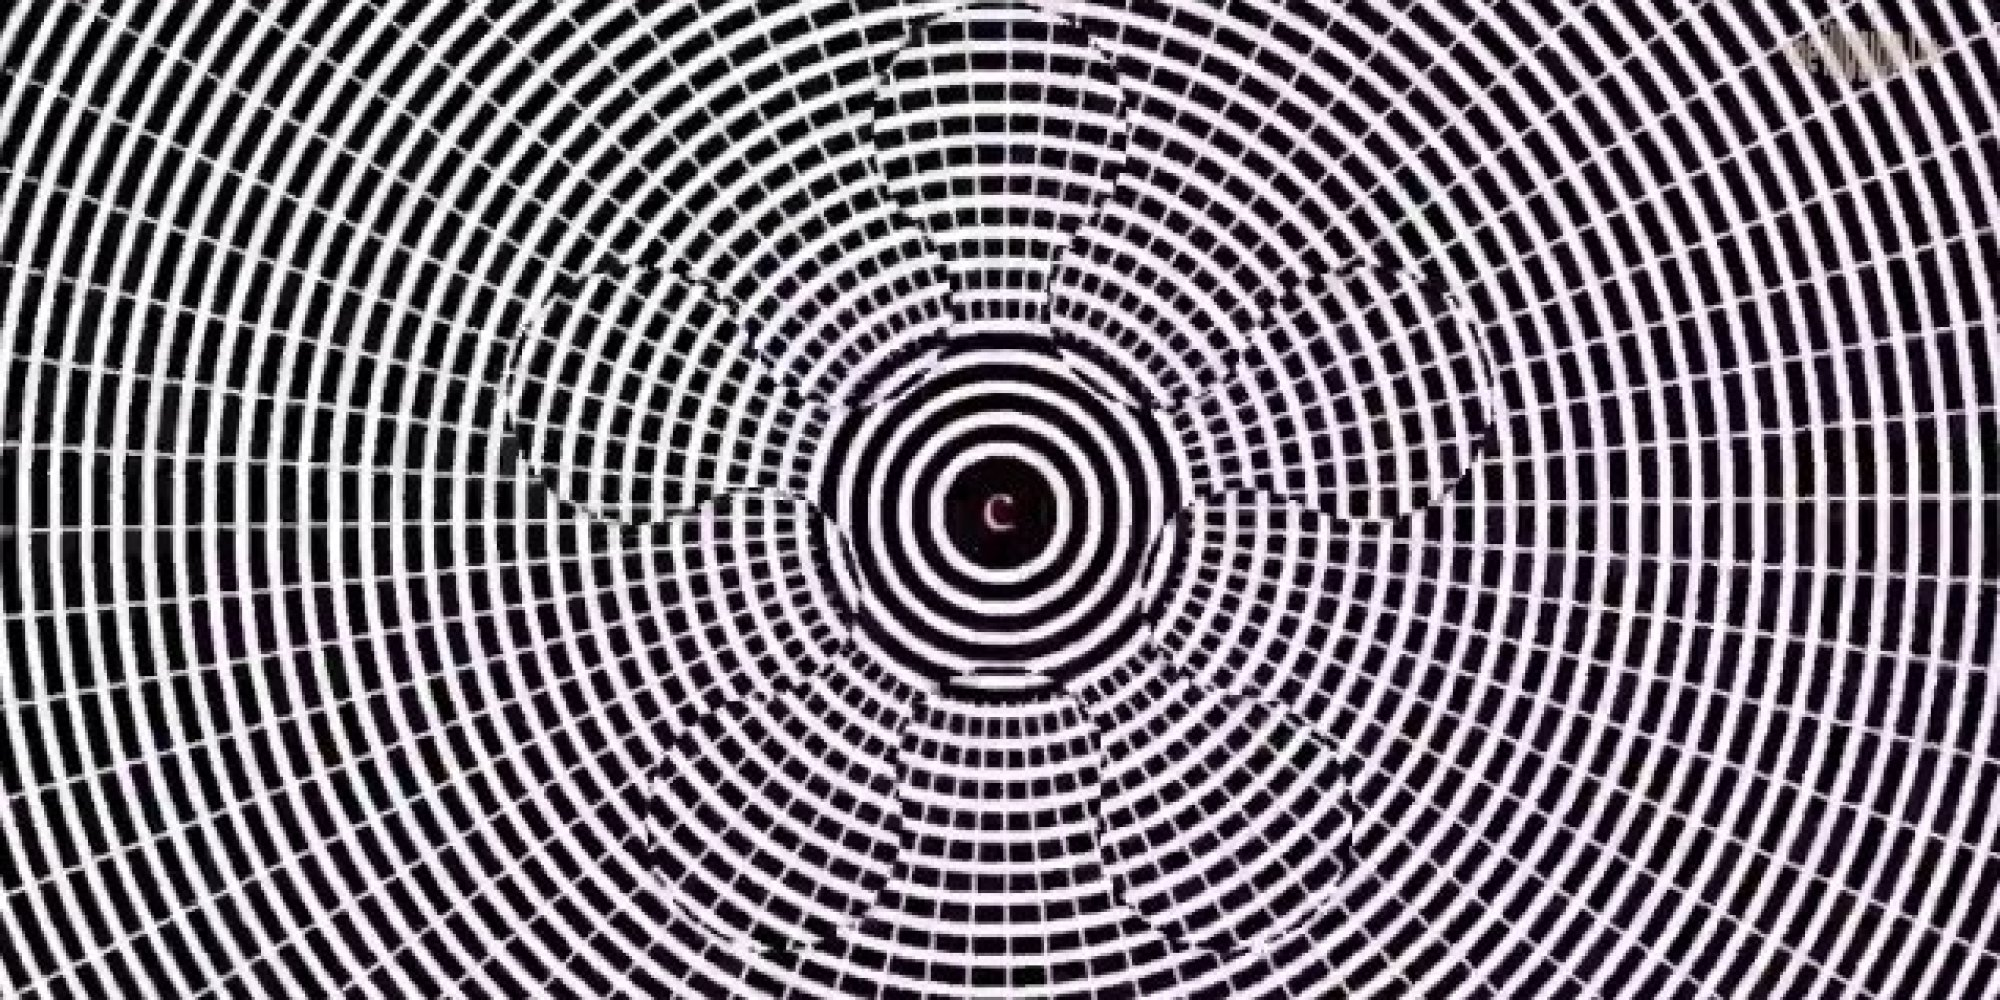 optical illusion hallucinate motion aftereffect really yes huffpost